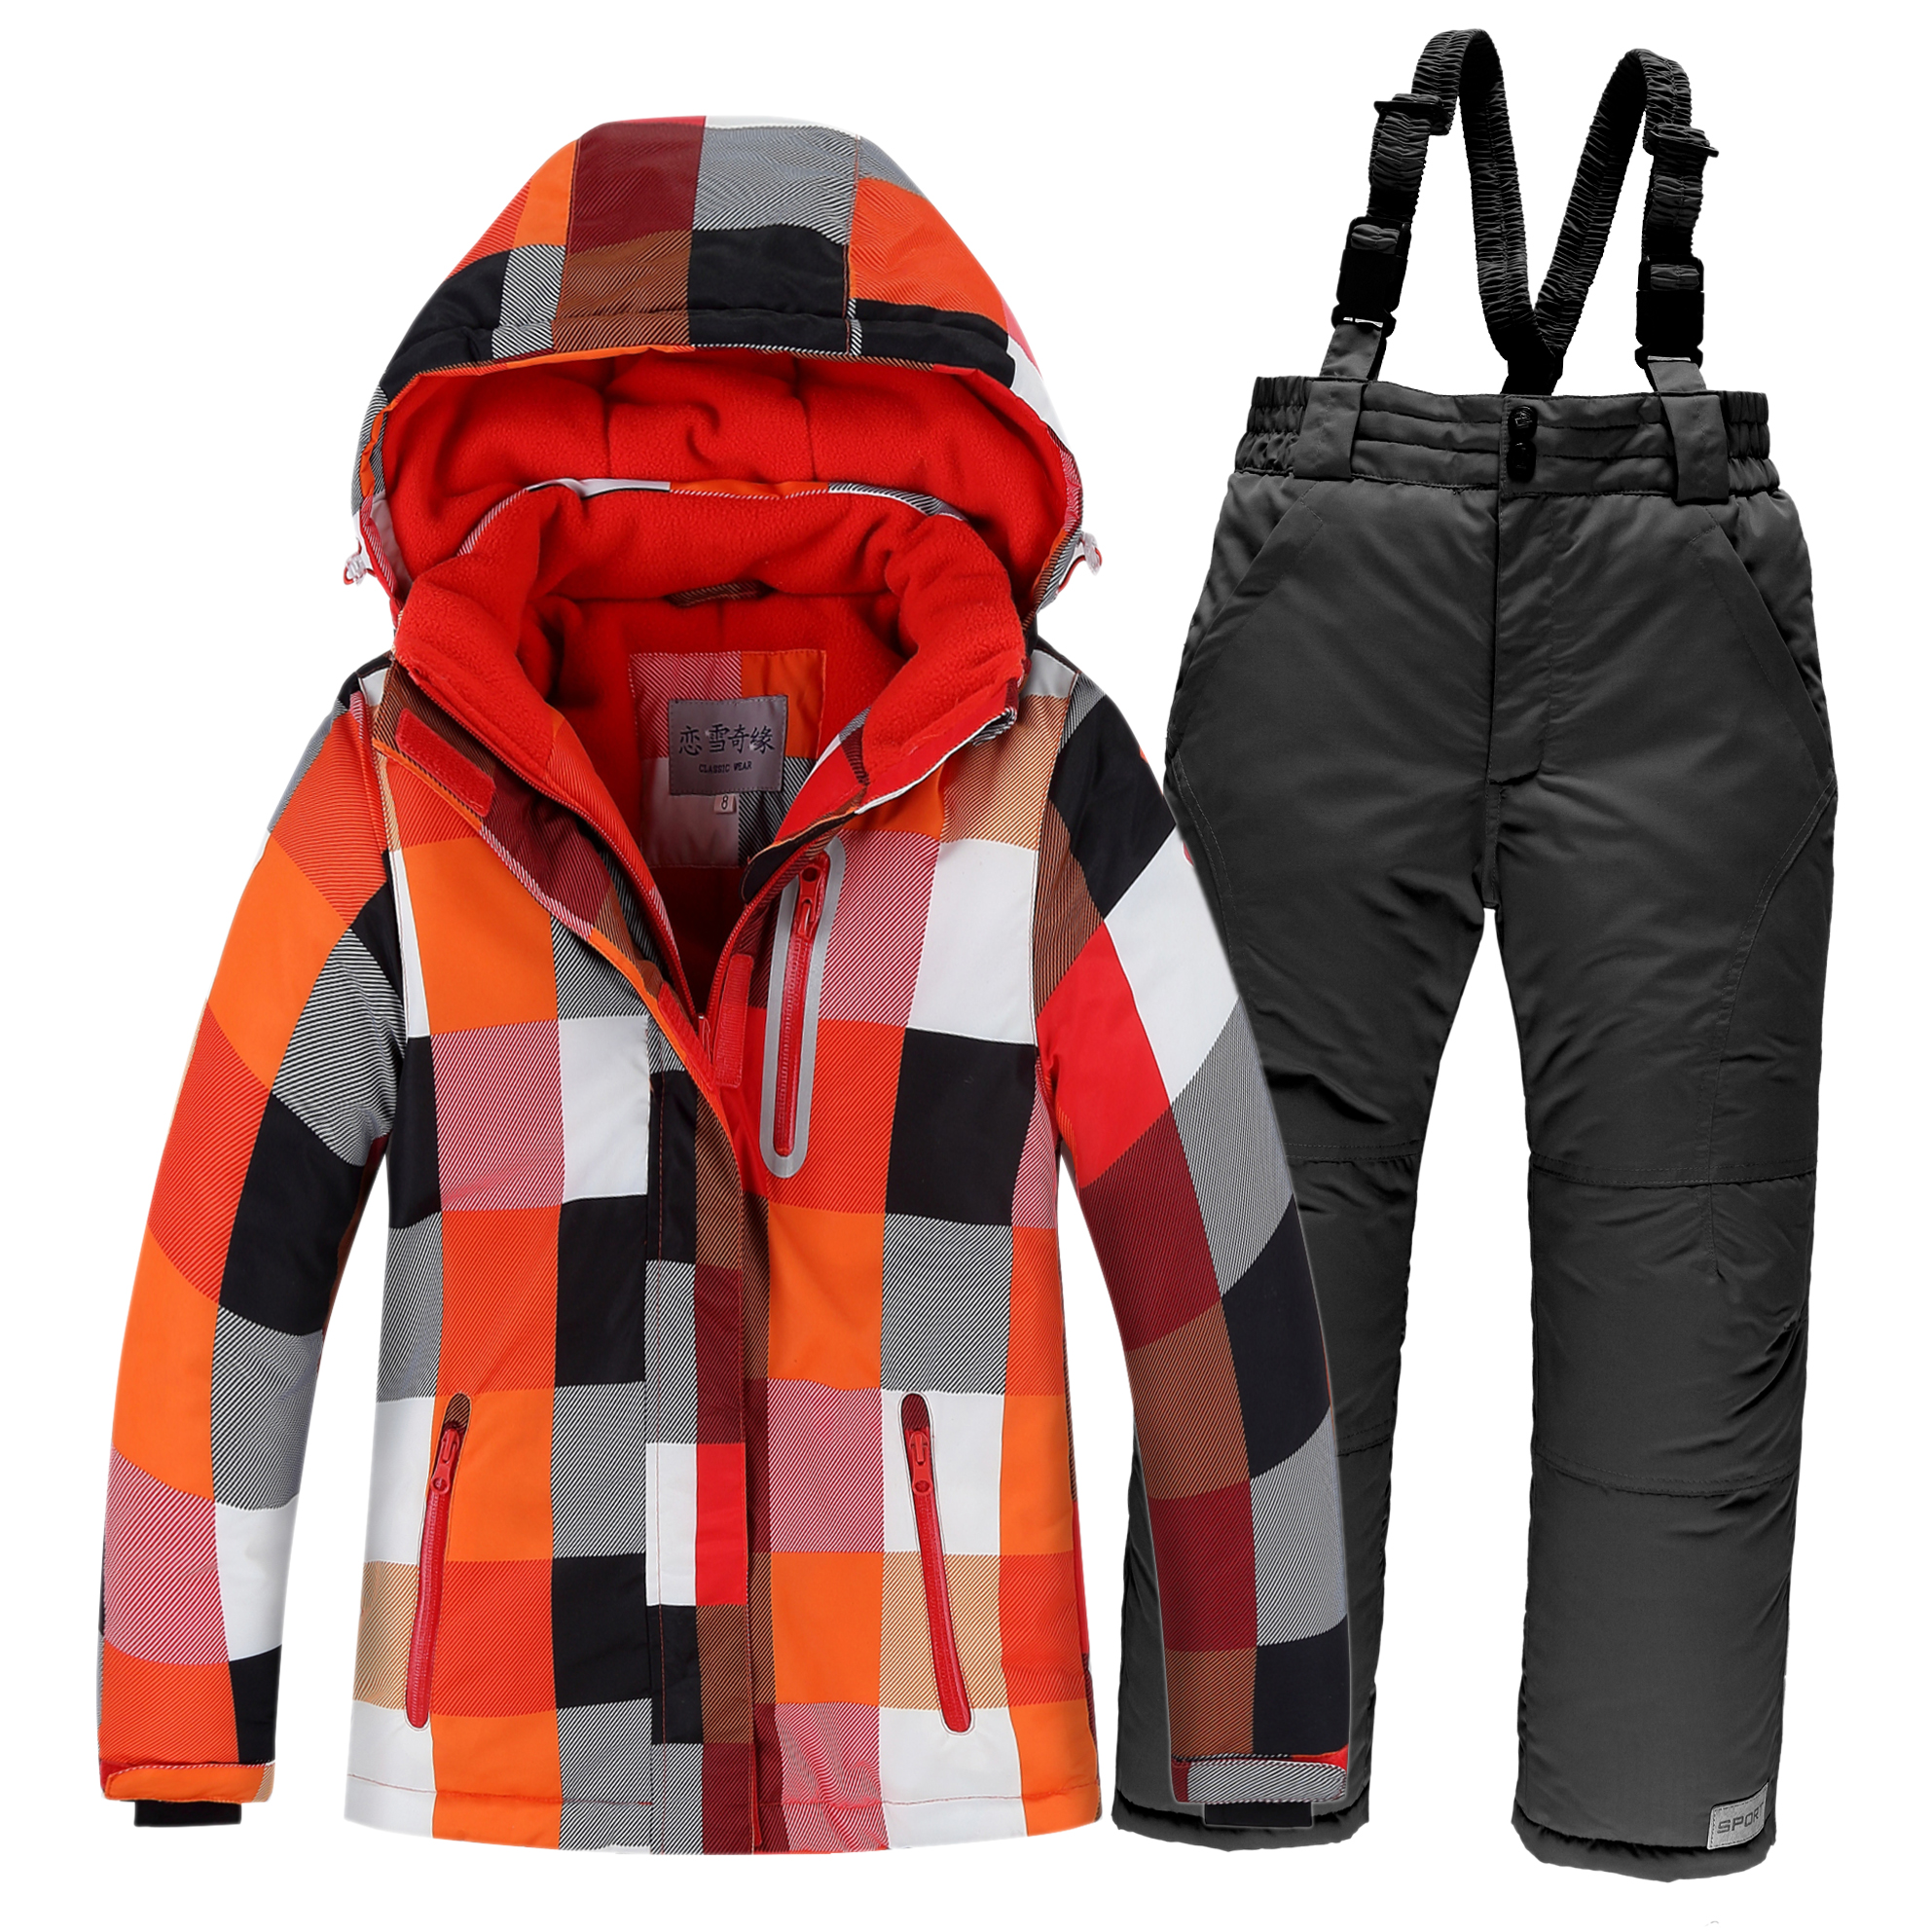 цены на Winter Children Ski Suit Windproof Warm Girls Clothing Set Jacket + Overalls Boys Clothes Set 3-16 Years Kids Snow Suits